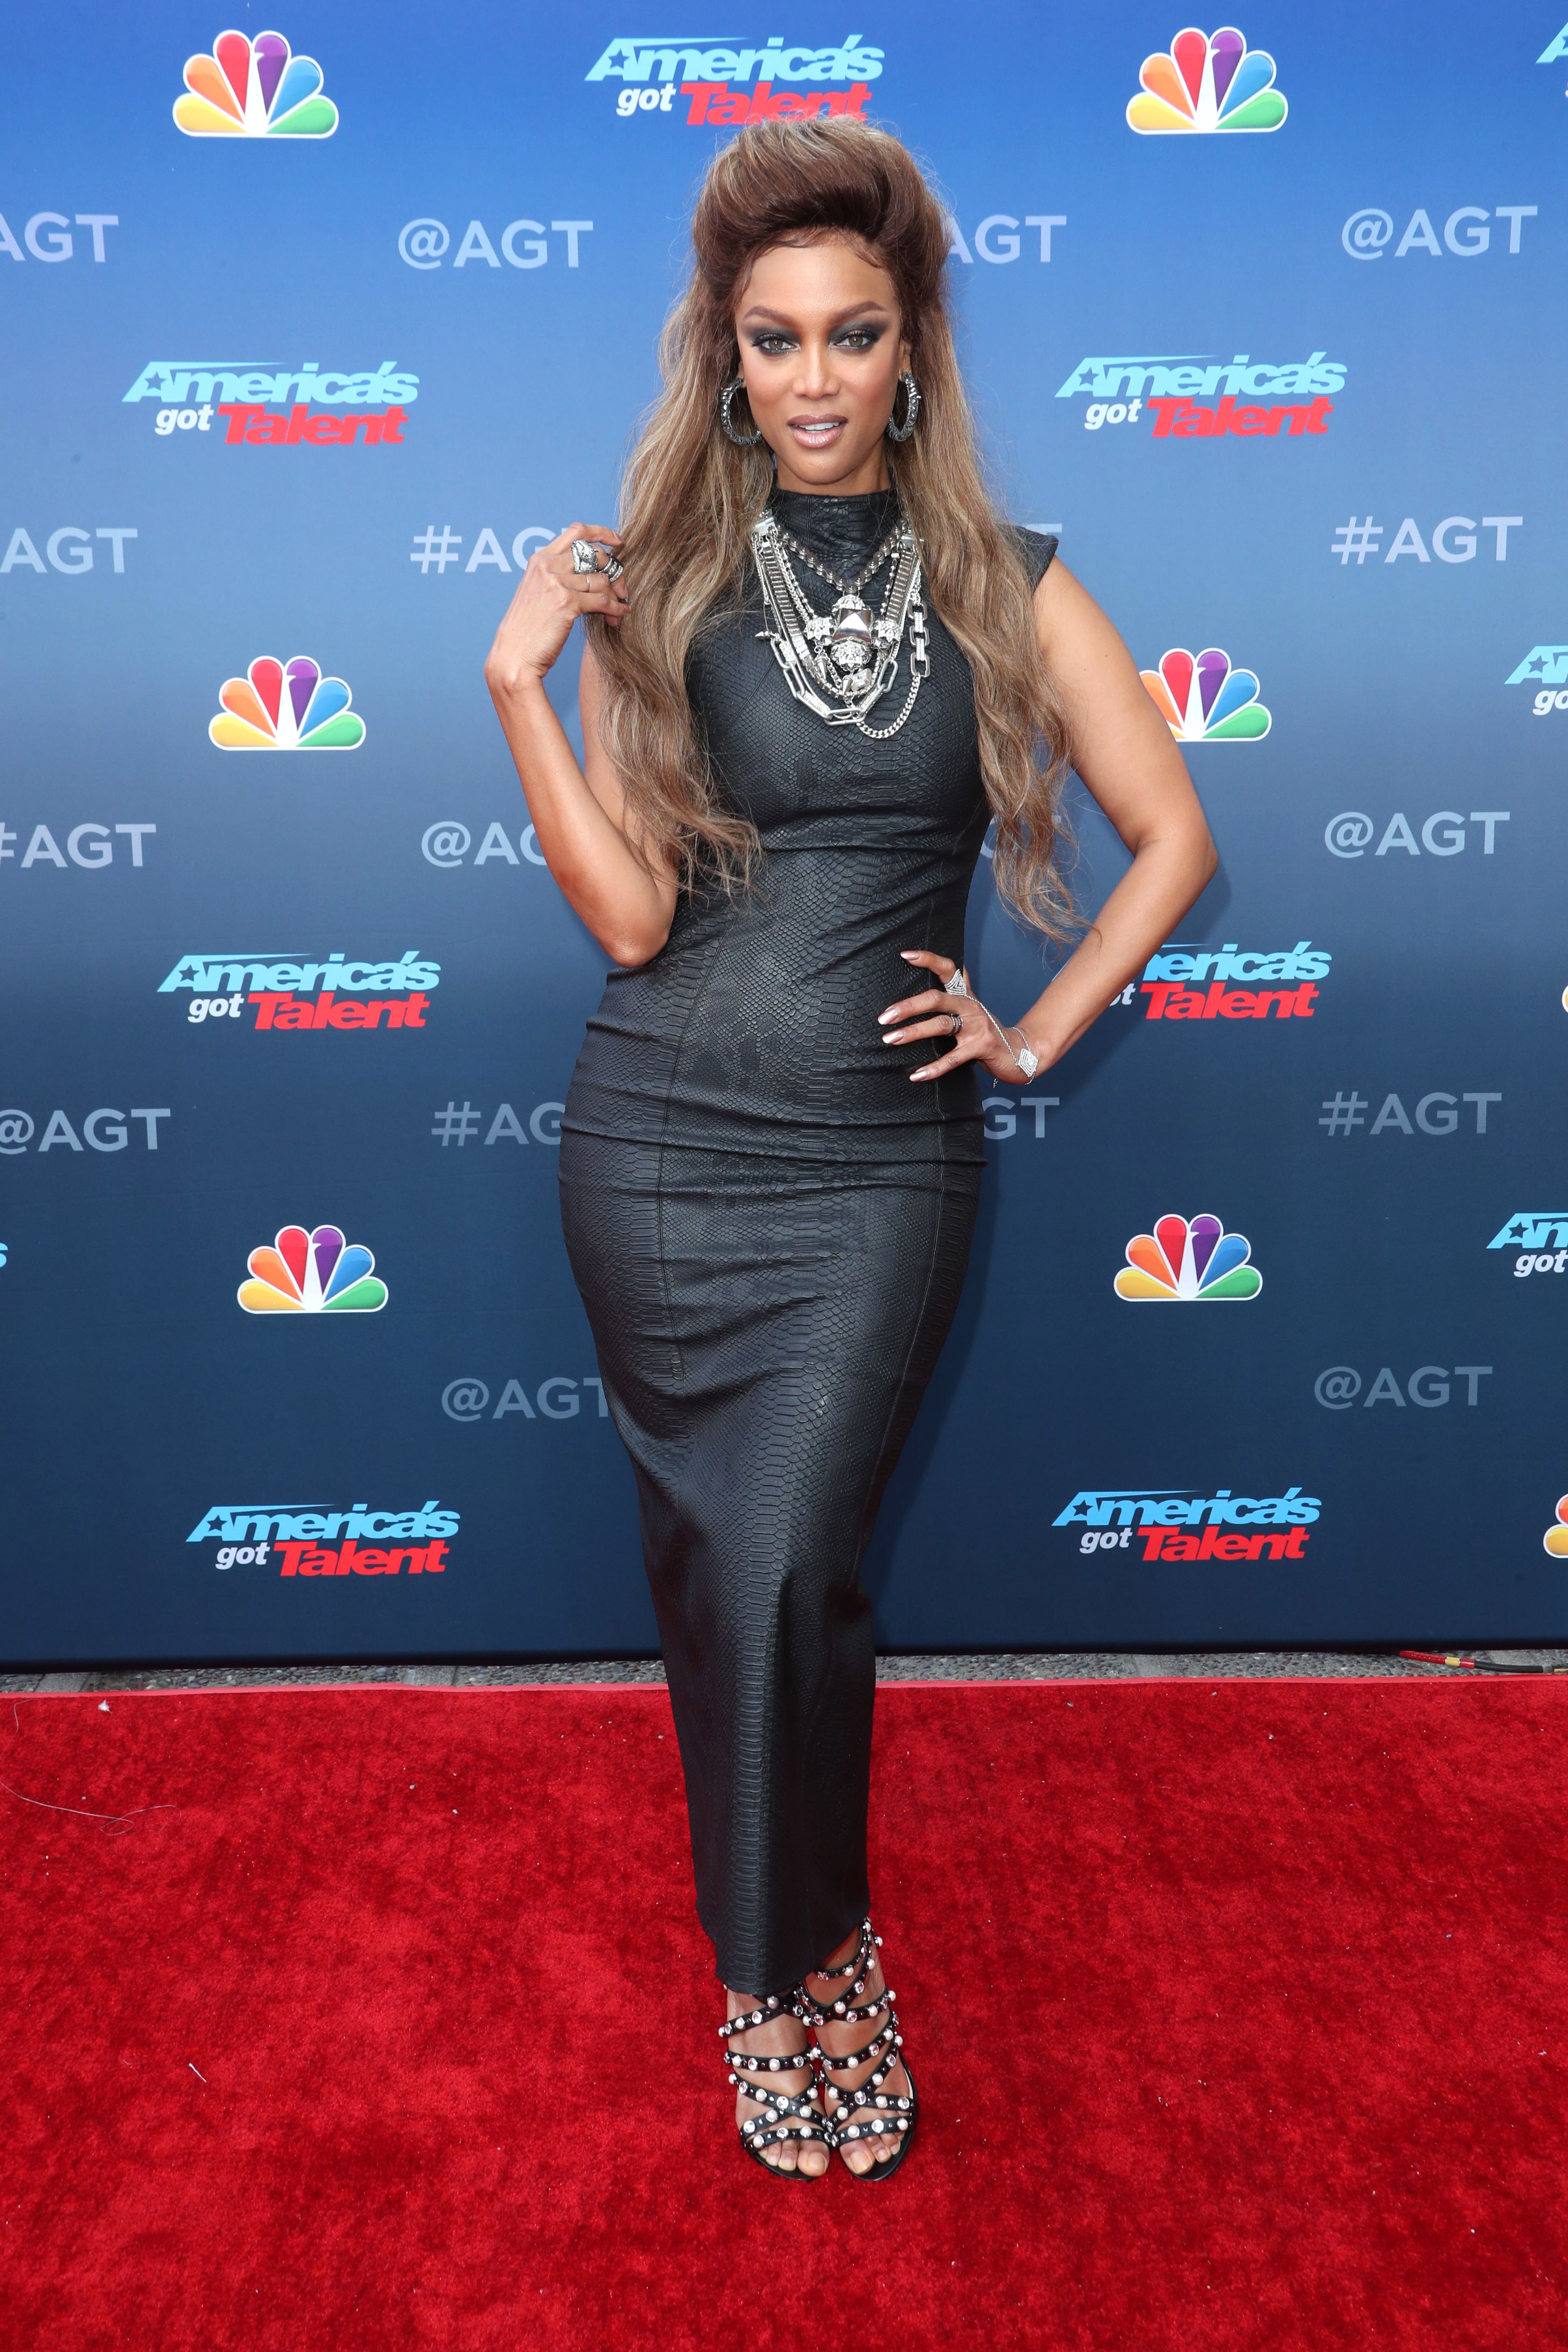 """Tyra Banks attends the """"America's Got Talent"""" kickoff event in Pasadena, California, on March 12, 2018."""